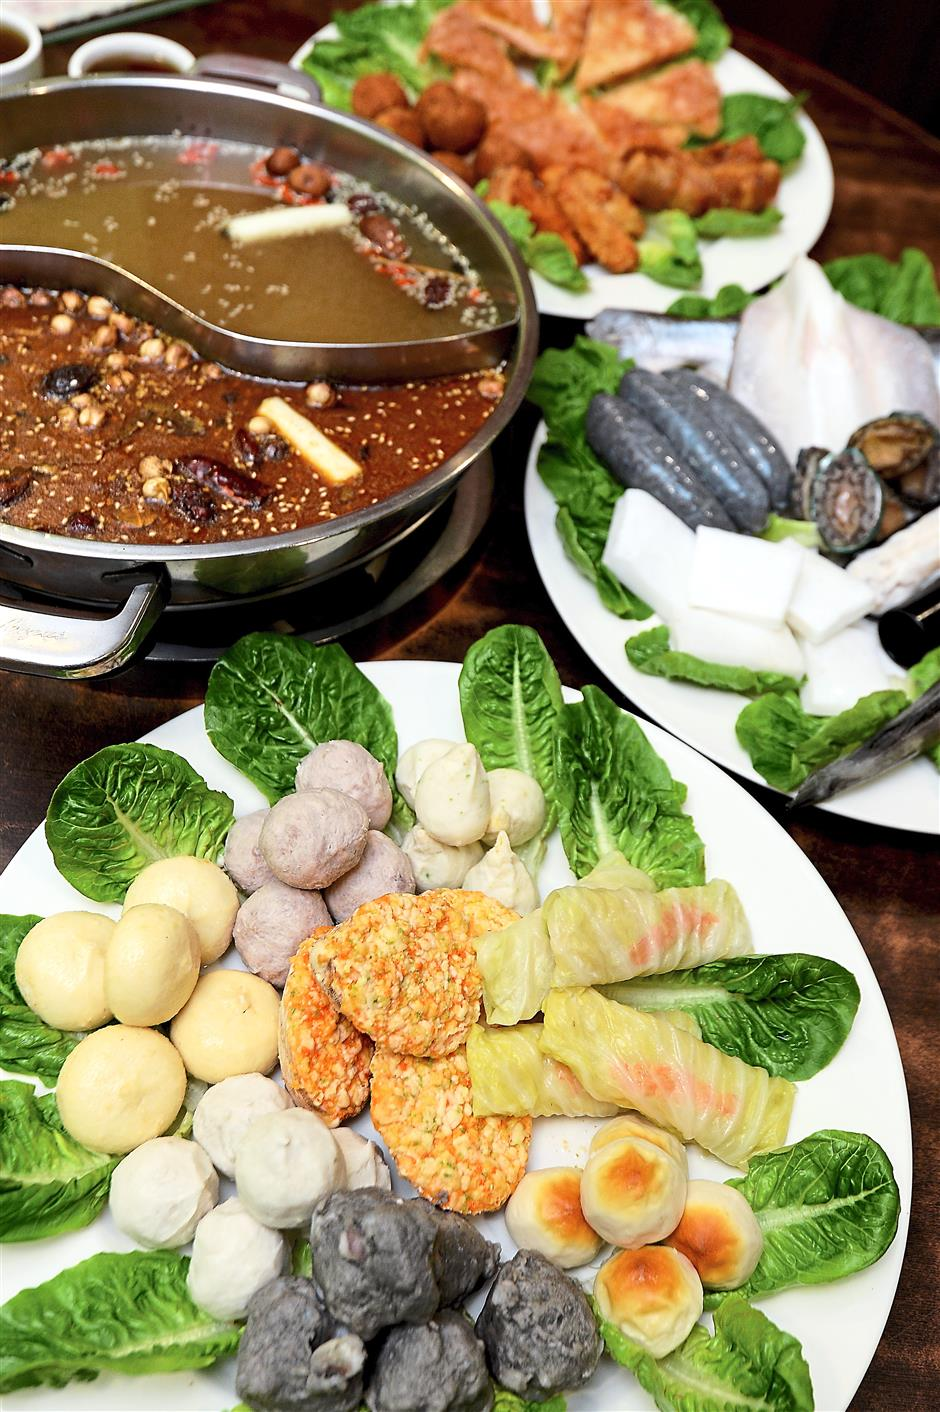 3 Three are three types of soups and a variety of meat and vegetarian options to choose from.